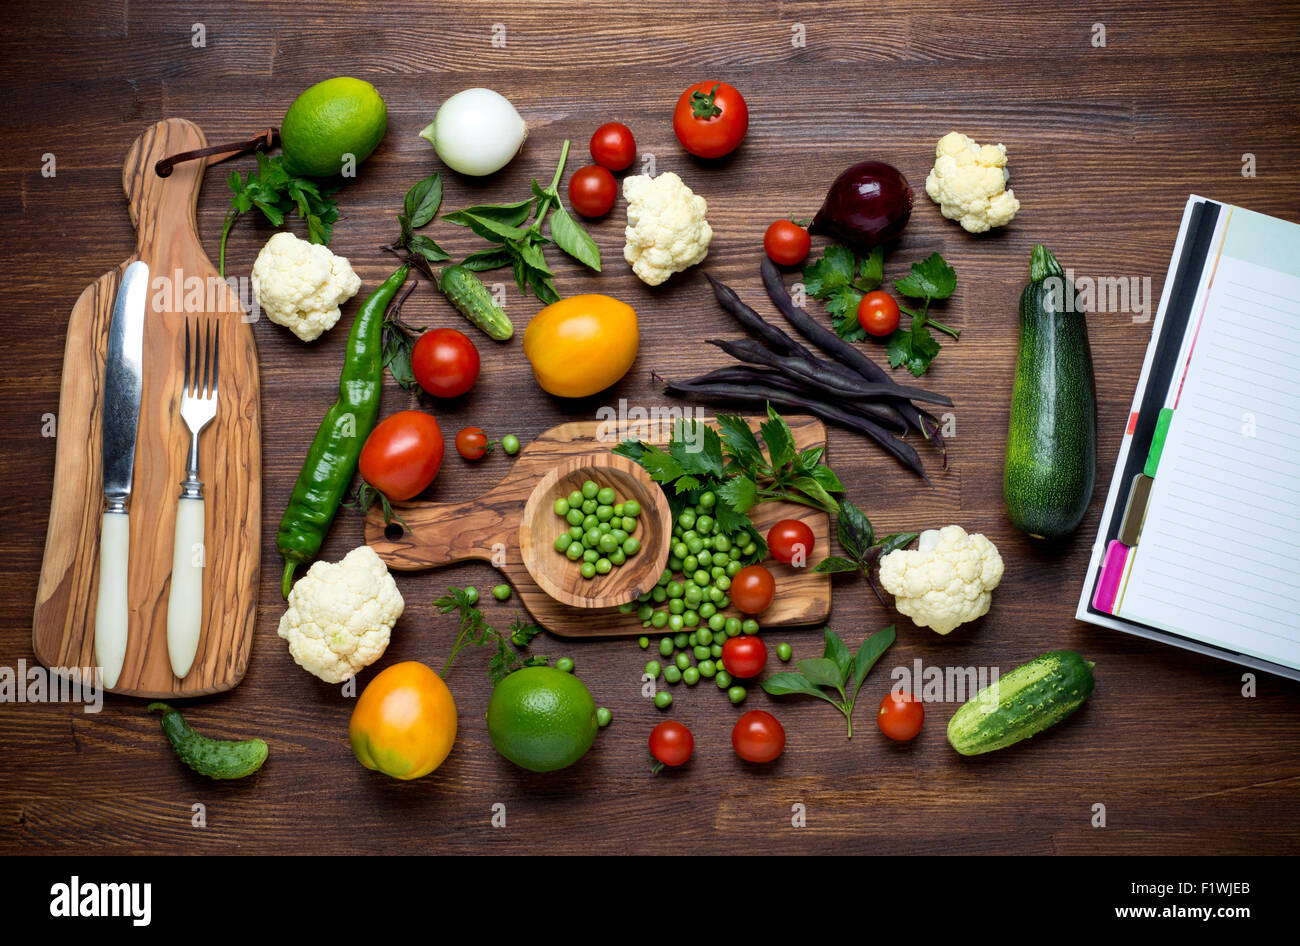 Healthy food herbs and vegetables on wooden table with recipe healthy food herbs and vegetables on wooden table with recipe book top view forumfinder